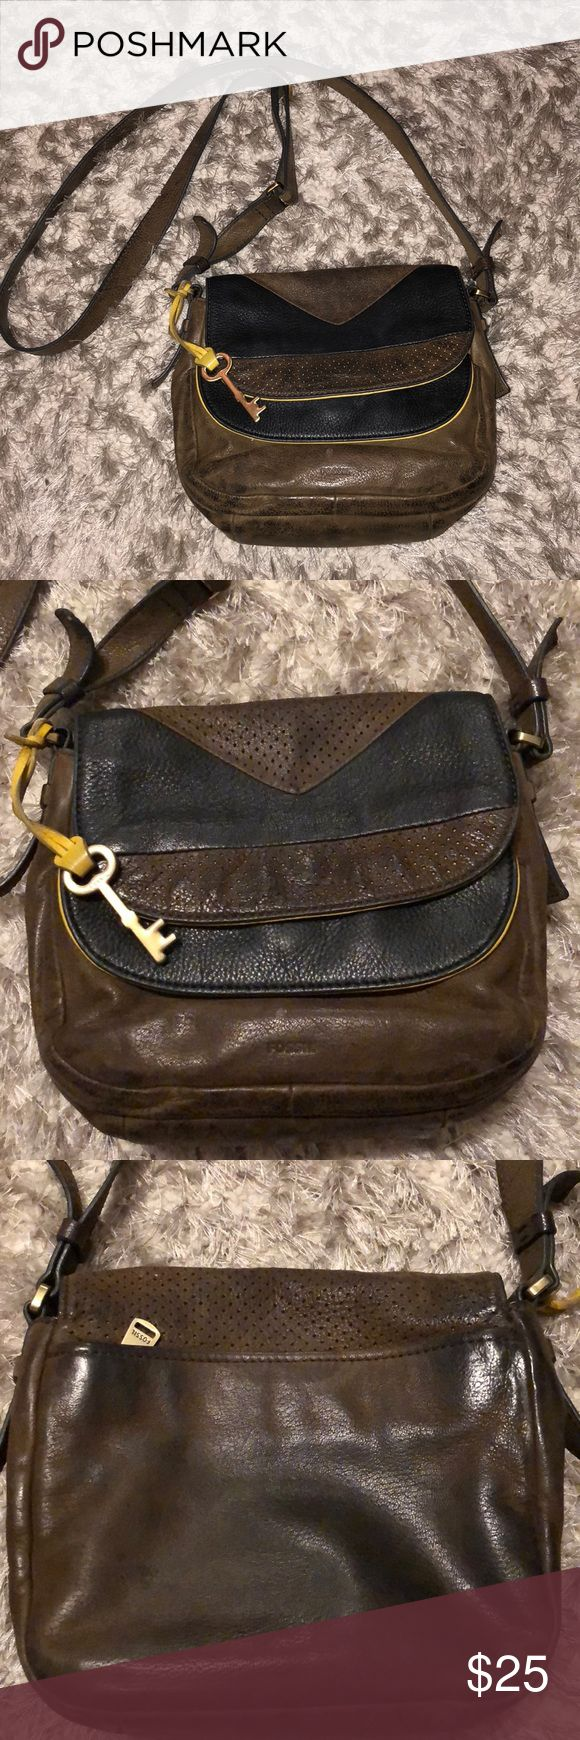 Fossil Cross Body Purse This purse has definitely been put to good use. Ya perfect for a going out bag. The leather has faded which happens with genuine leather. The inside has makeup stains, price reflects this wear. Some life left to it! Fossil Bags Crossbody Bags